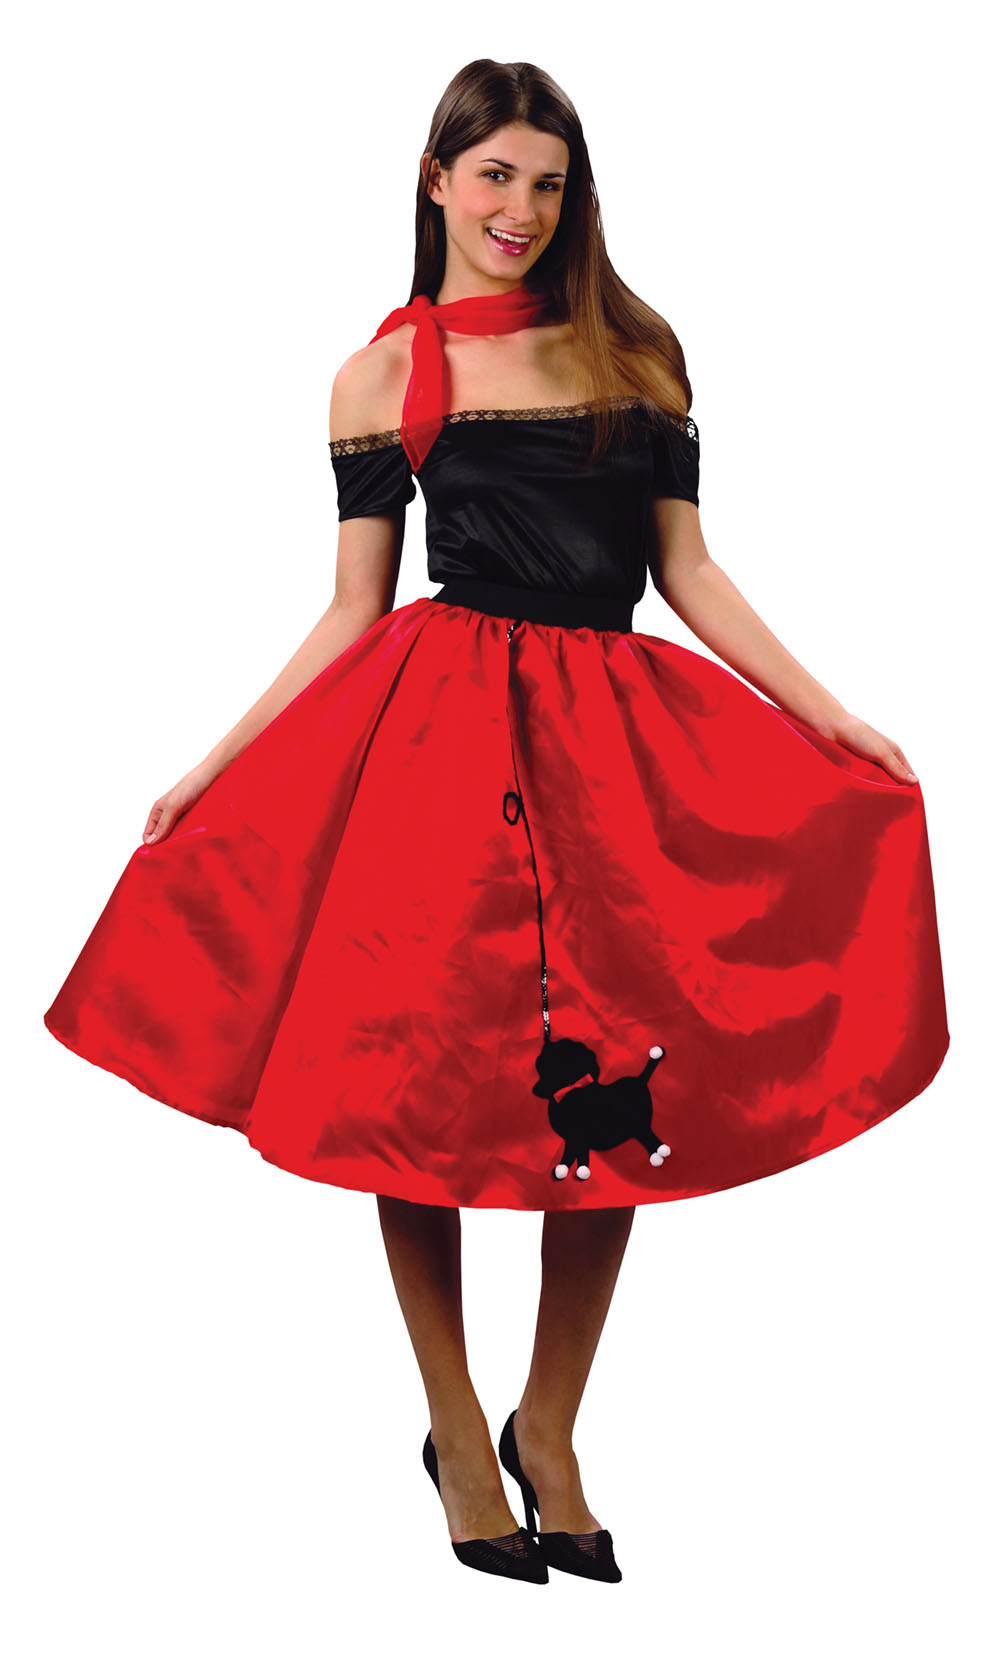 Ladies Red 1950s Dancer Skirt Poodle Fancy Dress Costume